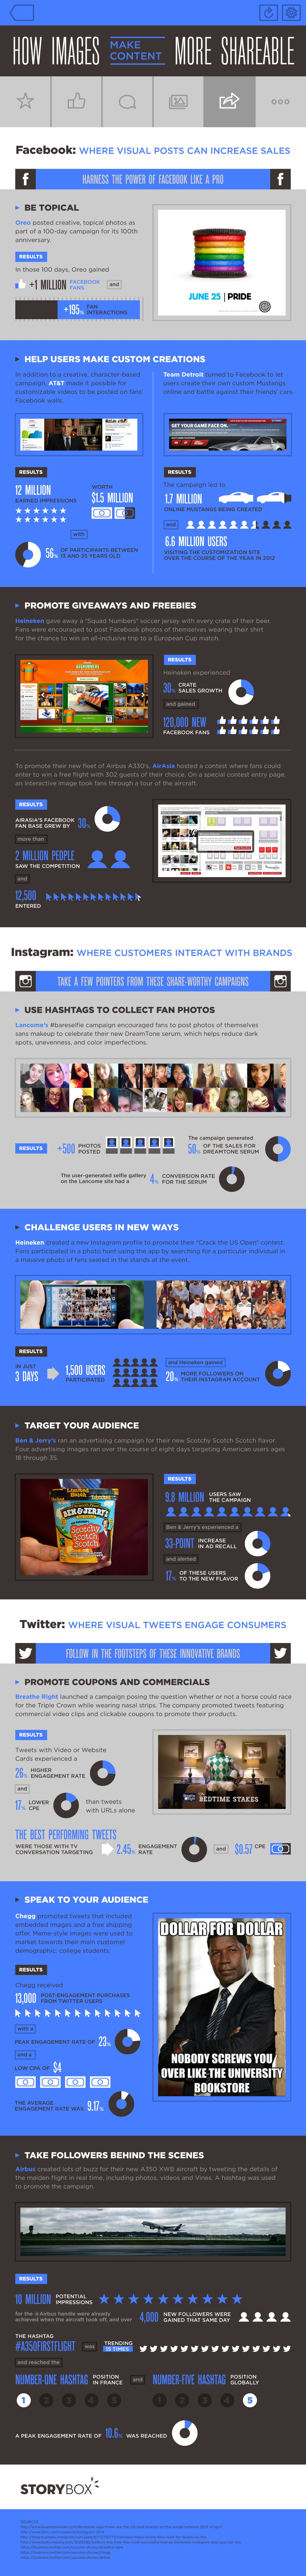 StoryBox how to make content more shareable.jpg